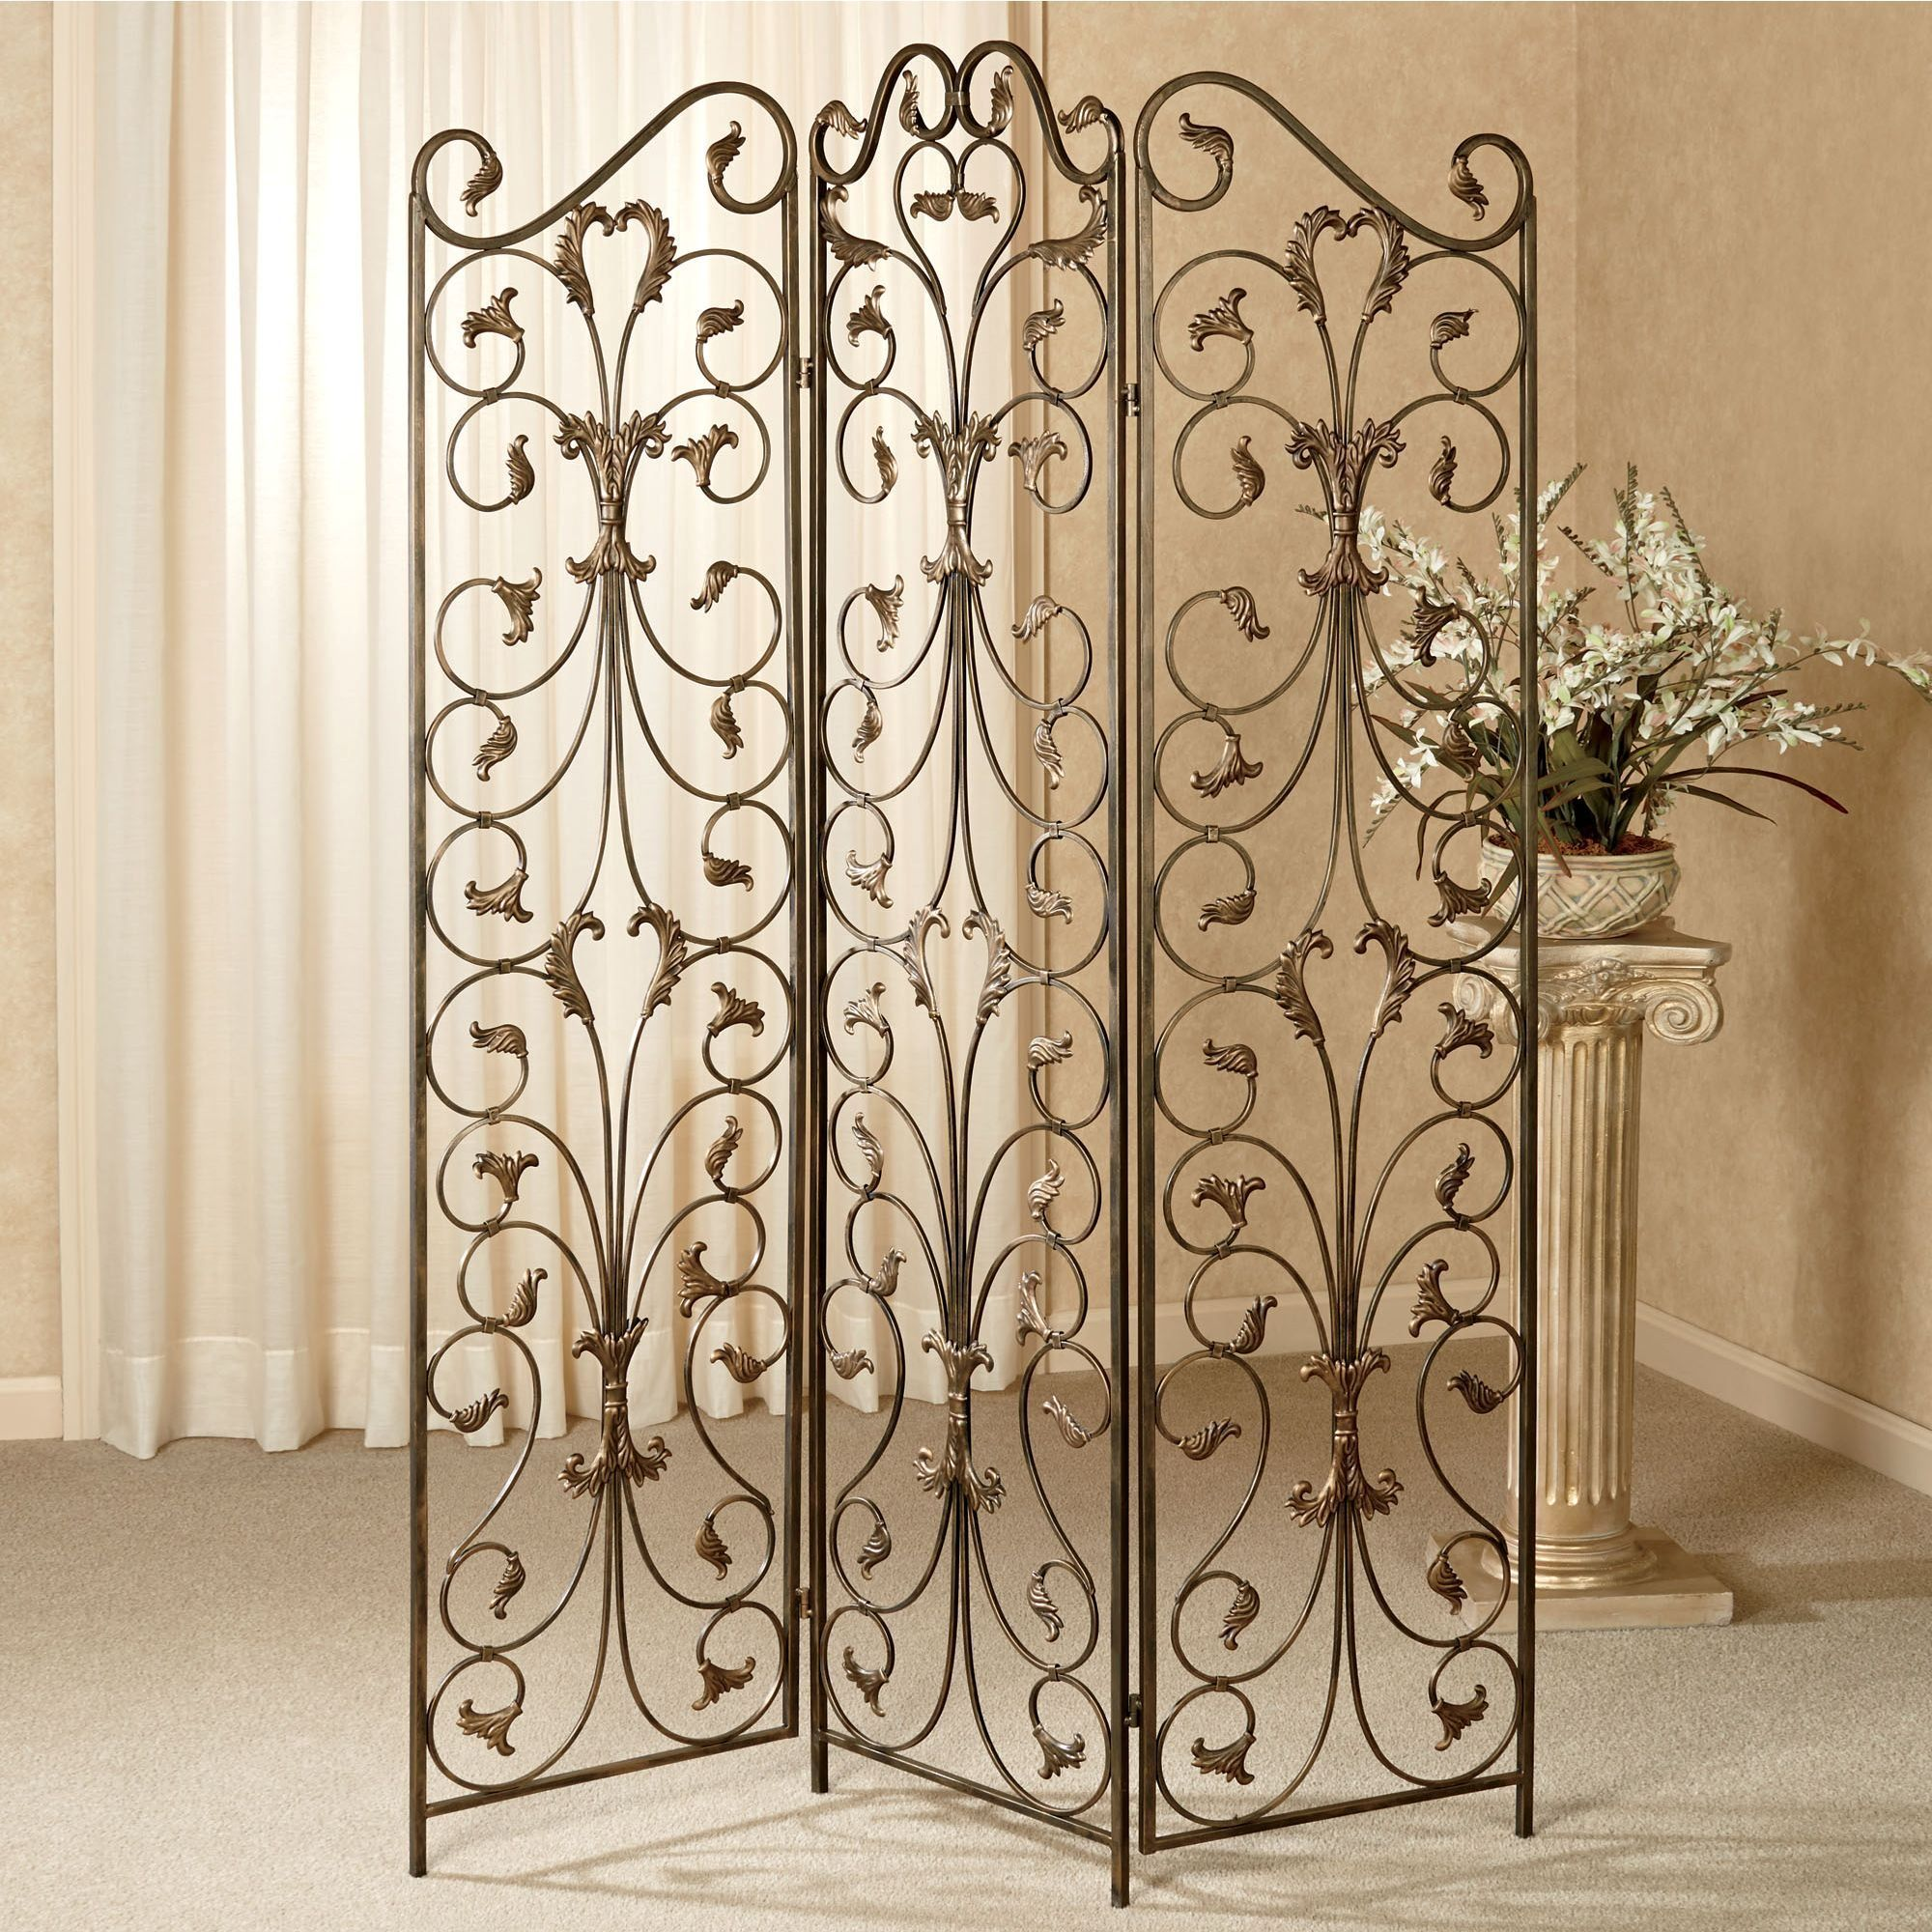 Ashville Metal Room Divider Screen Metal Room Divider Room Divider Screen Small Room Divider